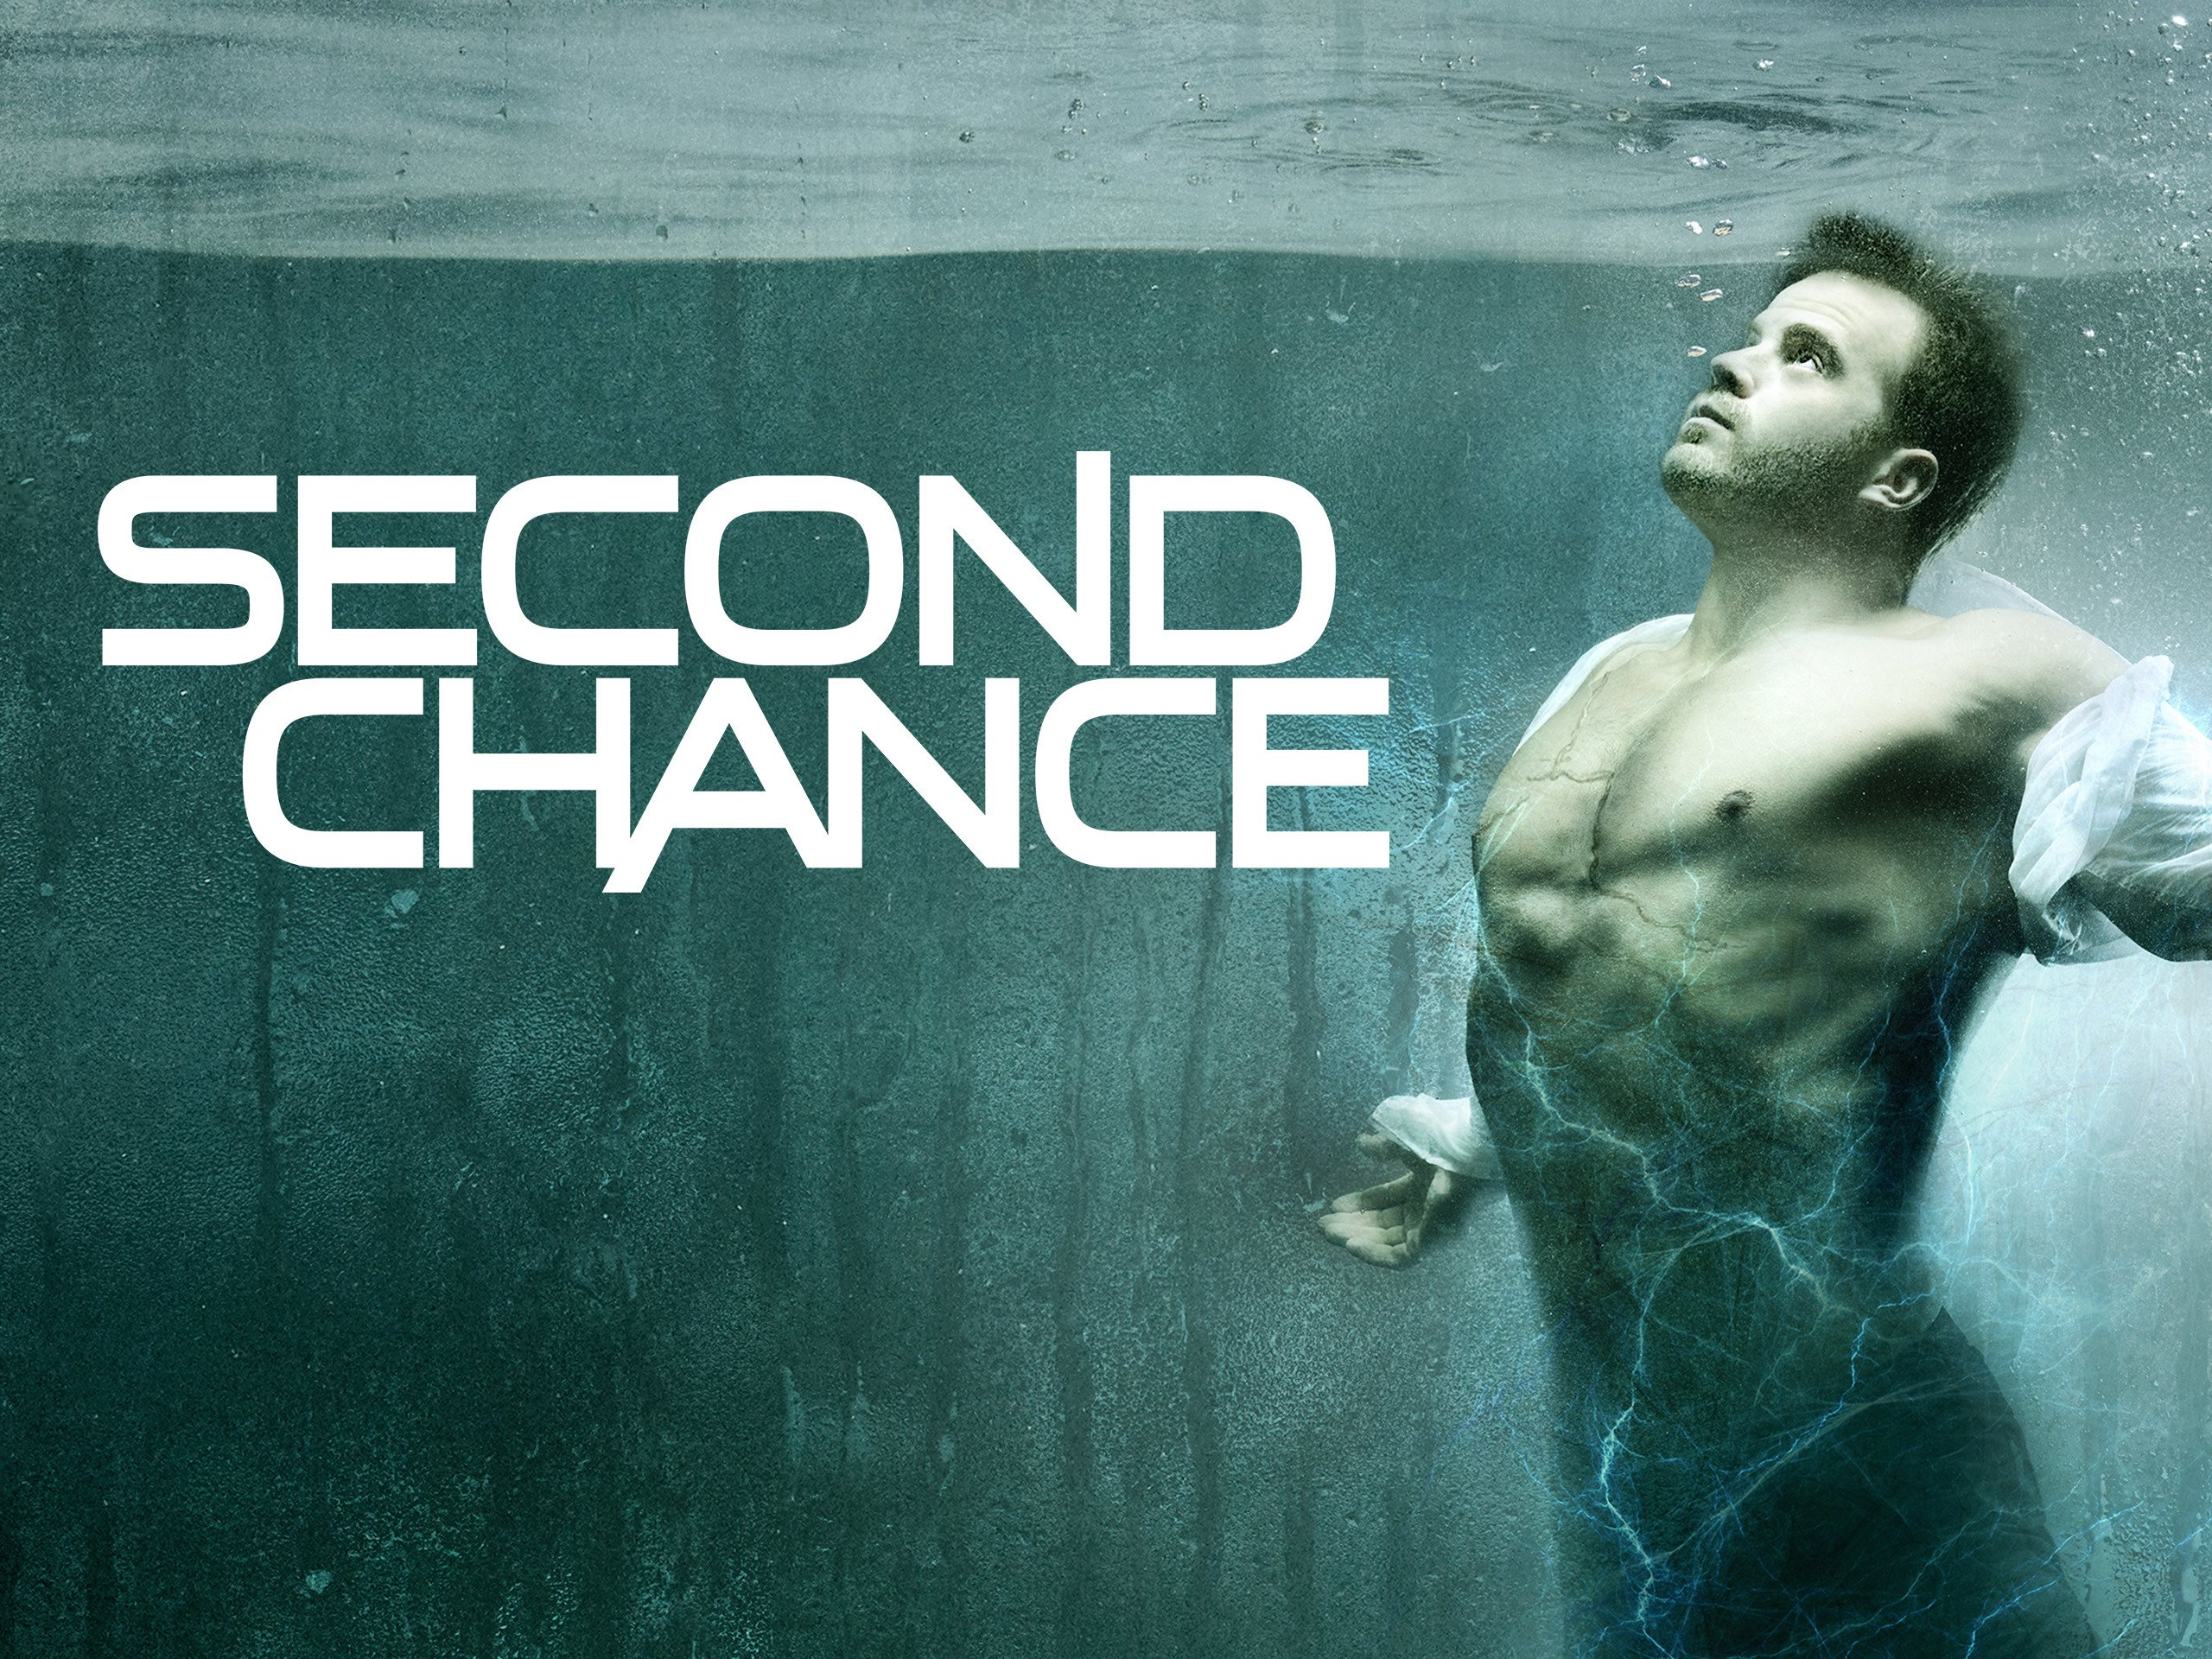 Amazon.com: Second Chance Season 1: Amazon Digital Services LLC